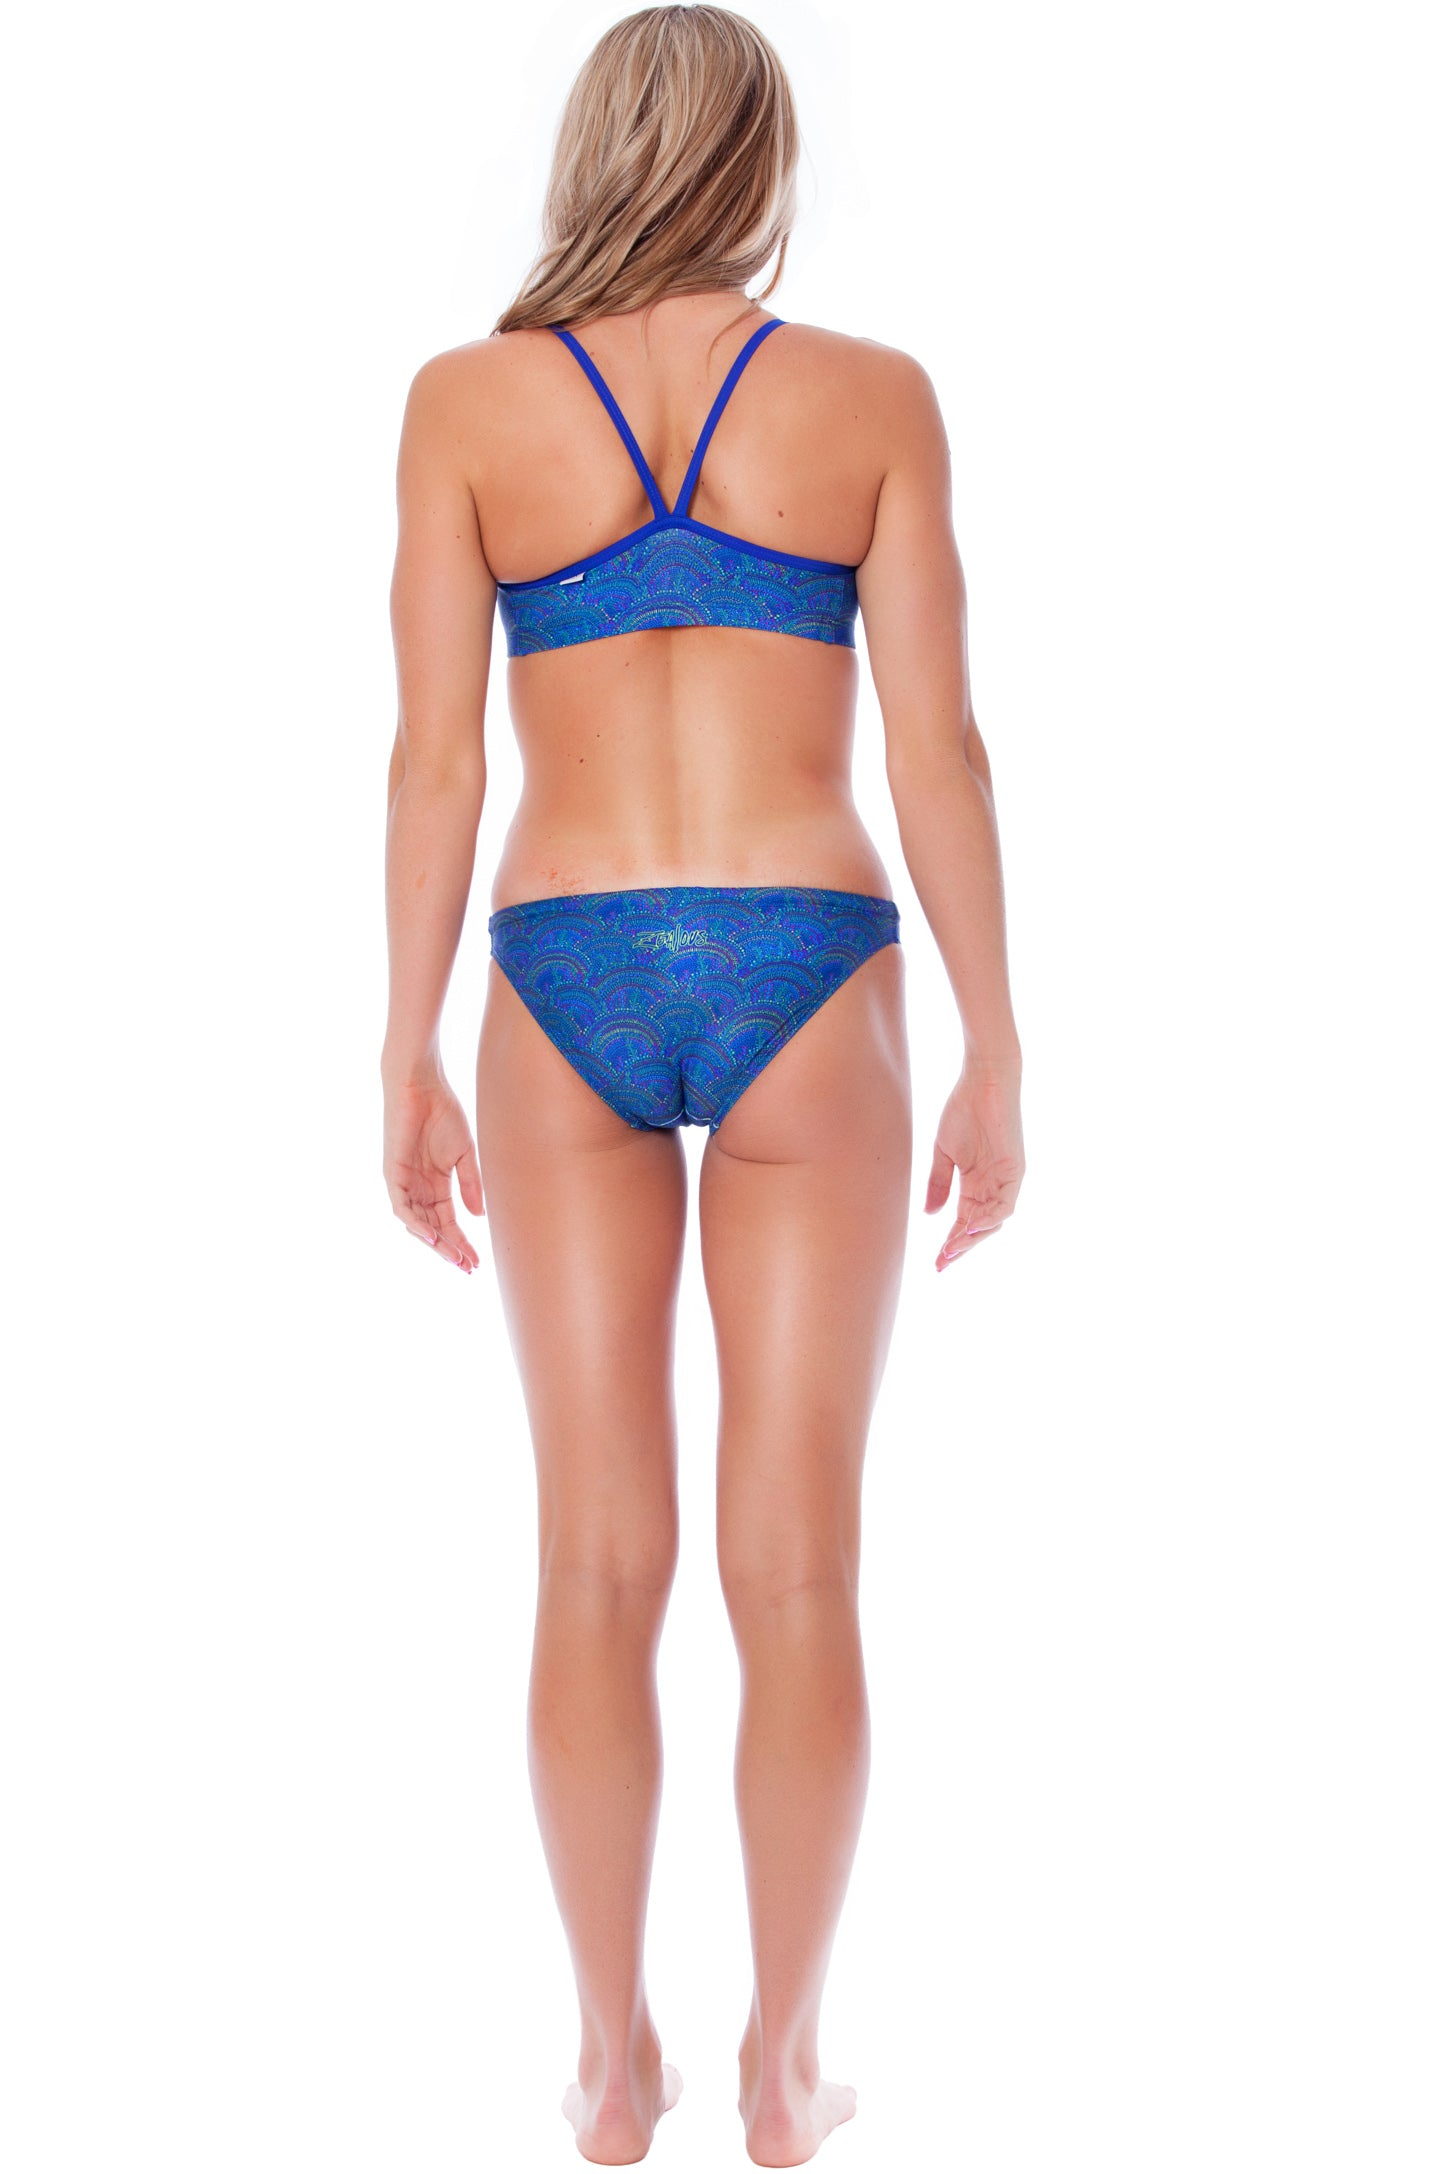 Kansas Top - Ladies 8 ONLY Ladies Two Piece - Tops - Shop Zealous Training Swimwear